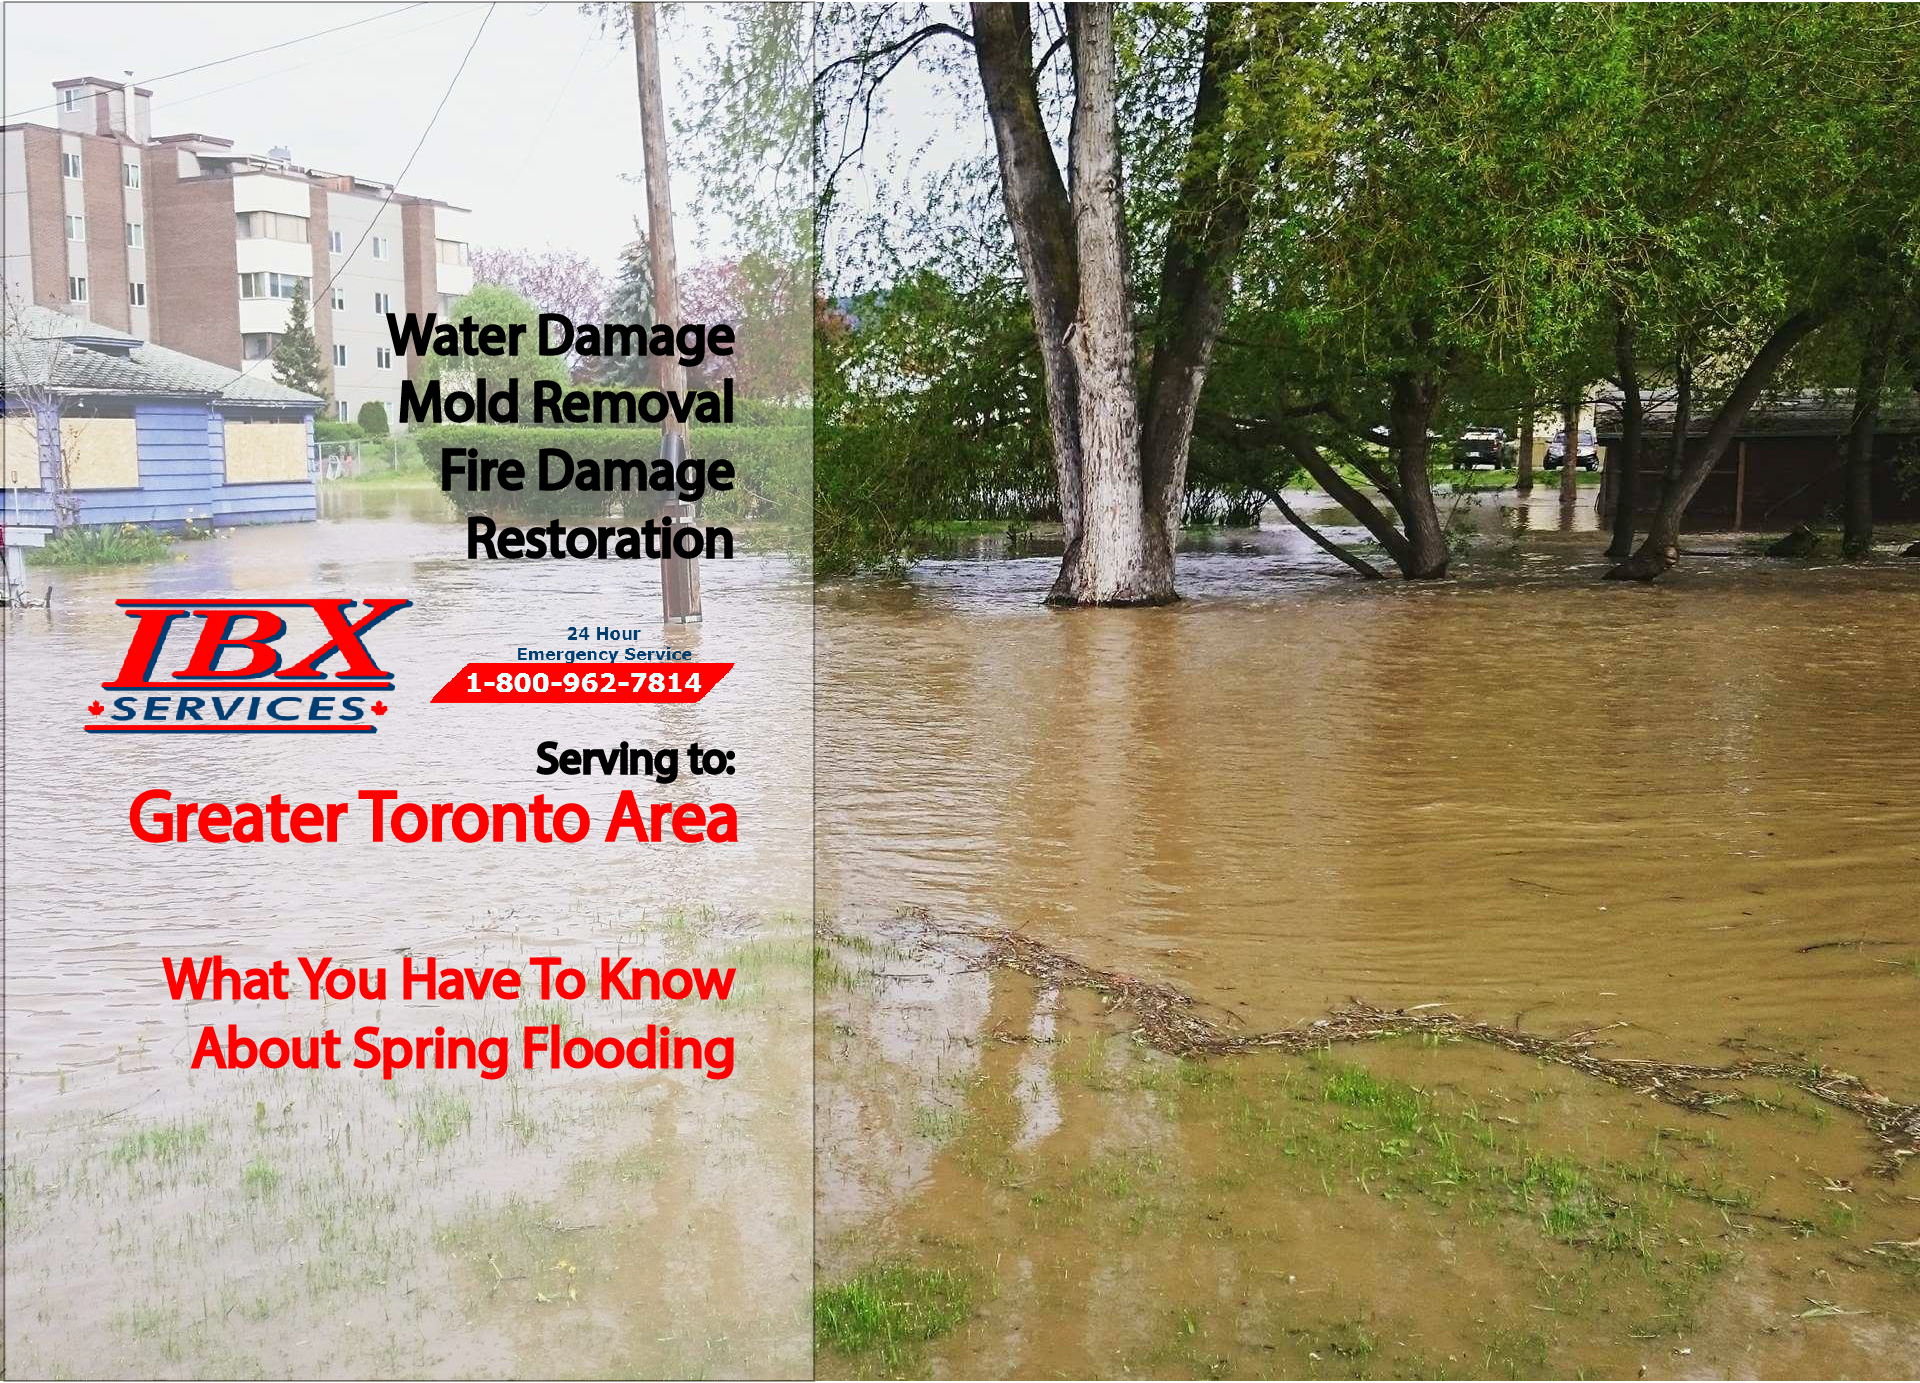 What You Have To Know About Spring Flooding.